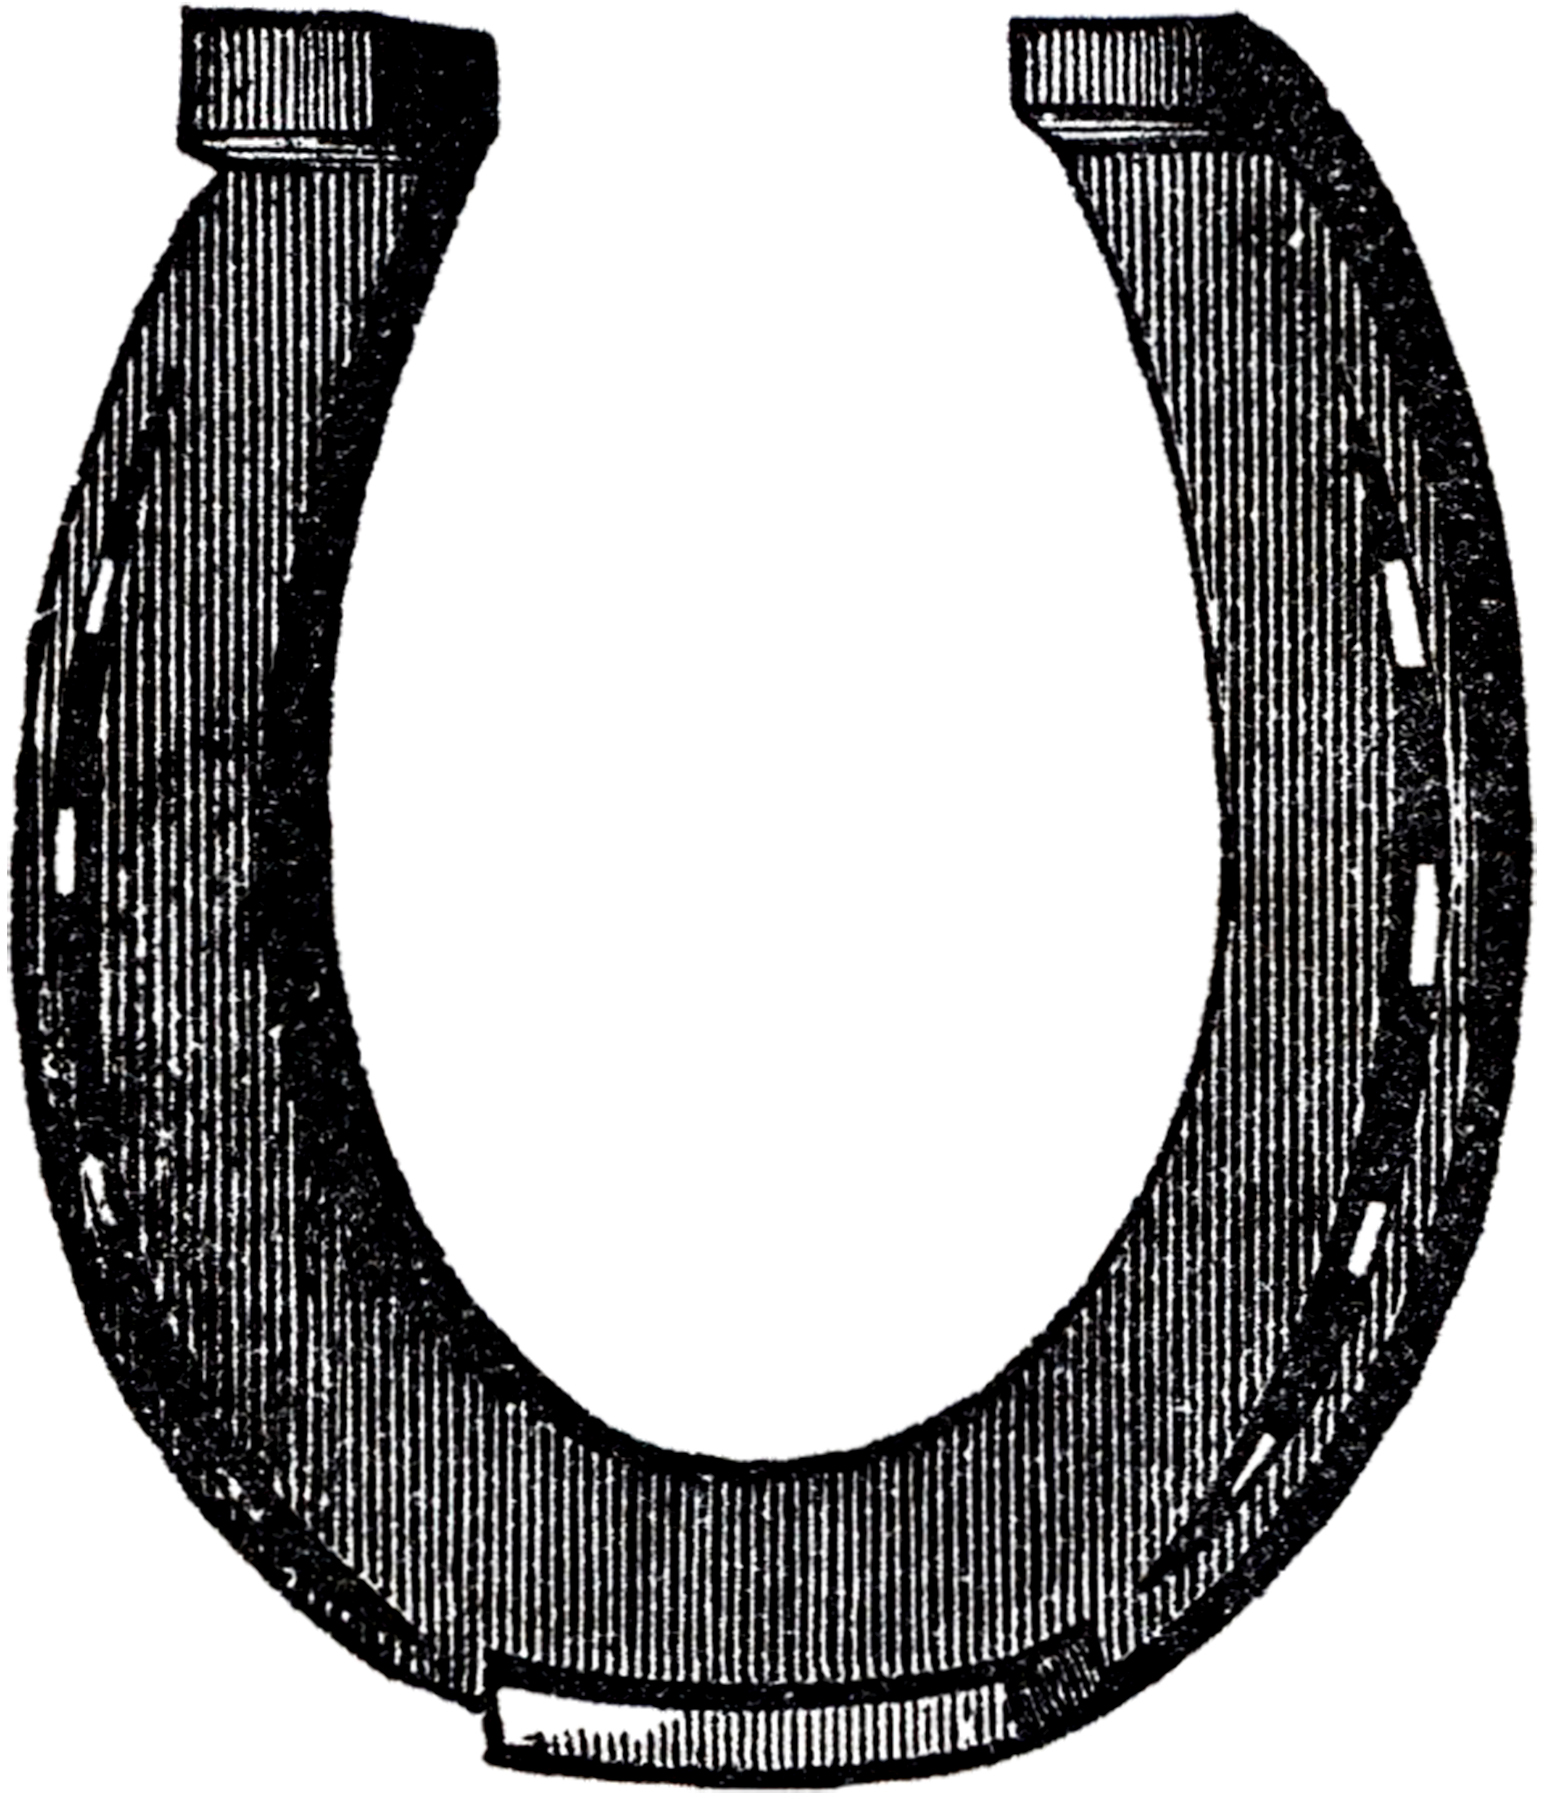 1544x1800 Horseshoe Free Horse Shoe Clip Art The Graphics Fairy